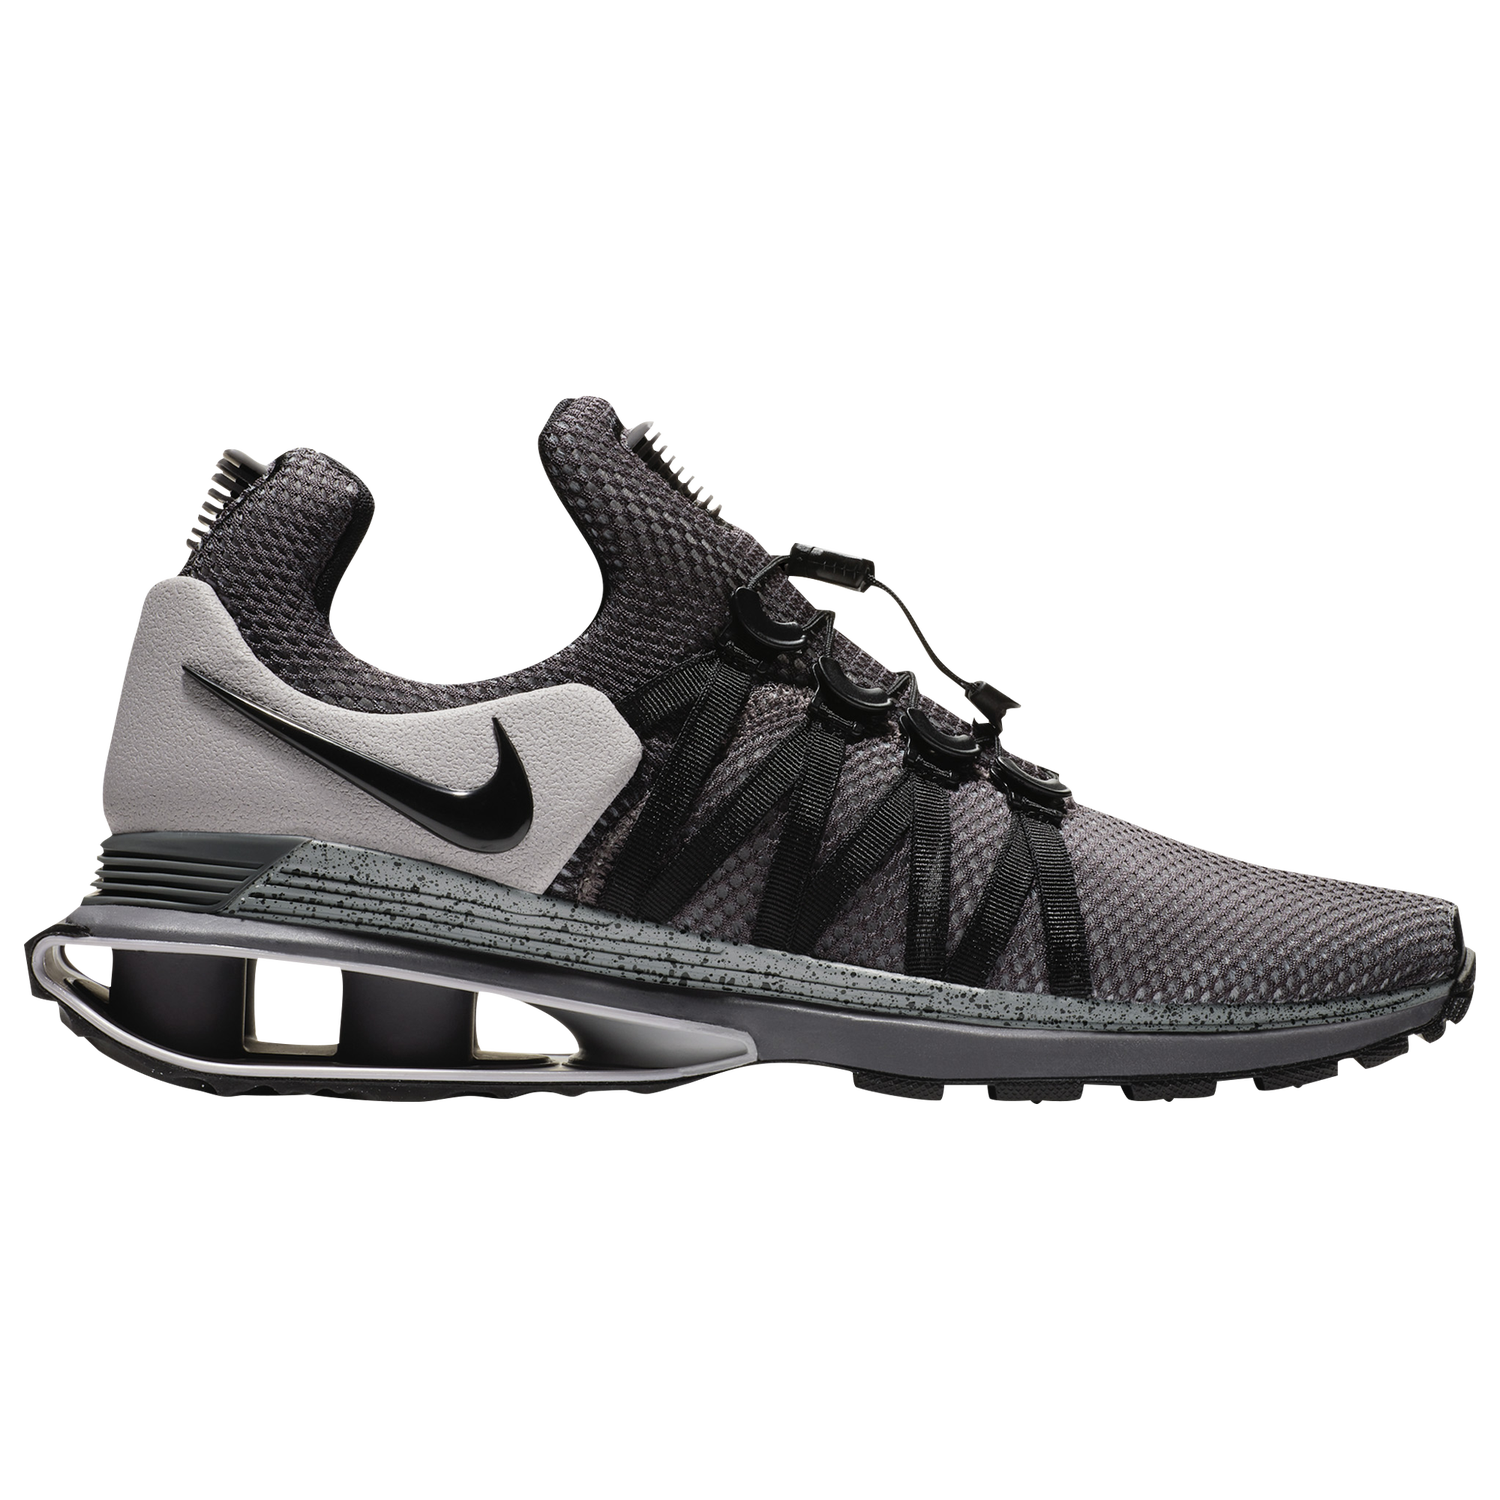 Nike Shox Gravity - Men's Atmosphere Grey/Black/Thunder Grey R1999011